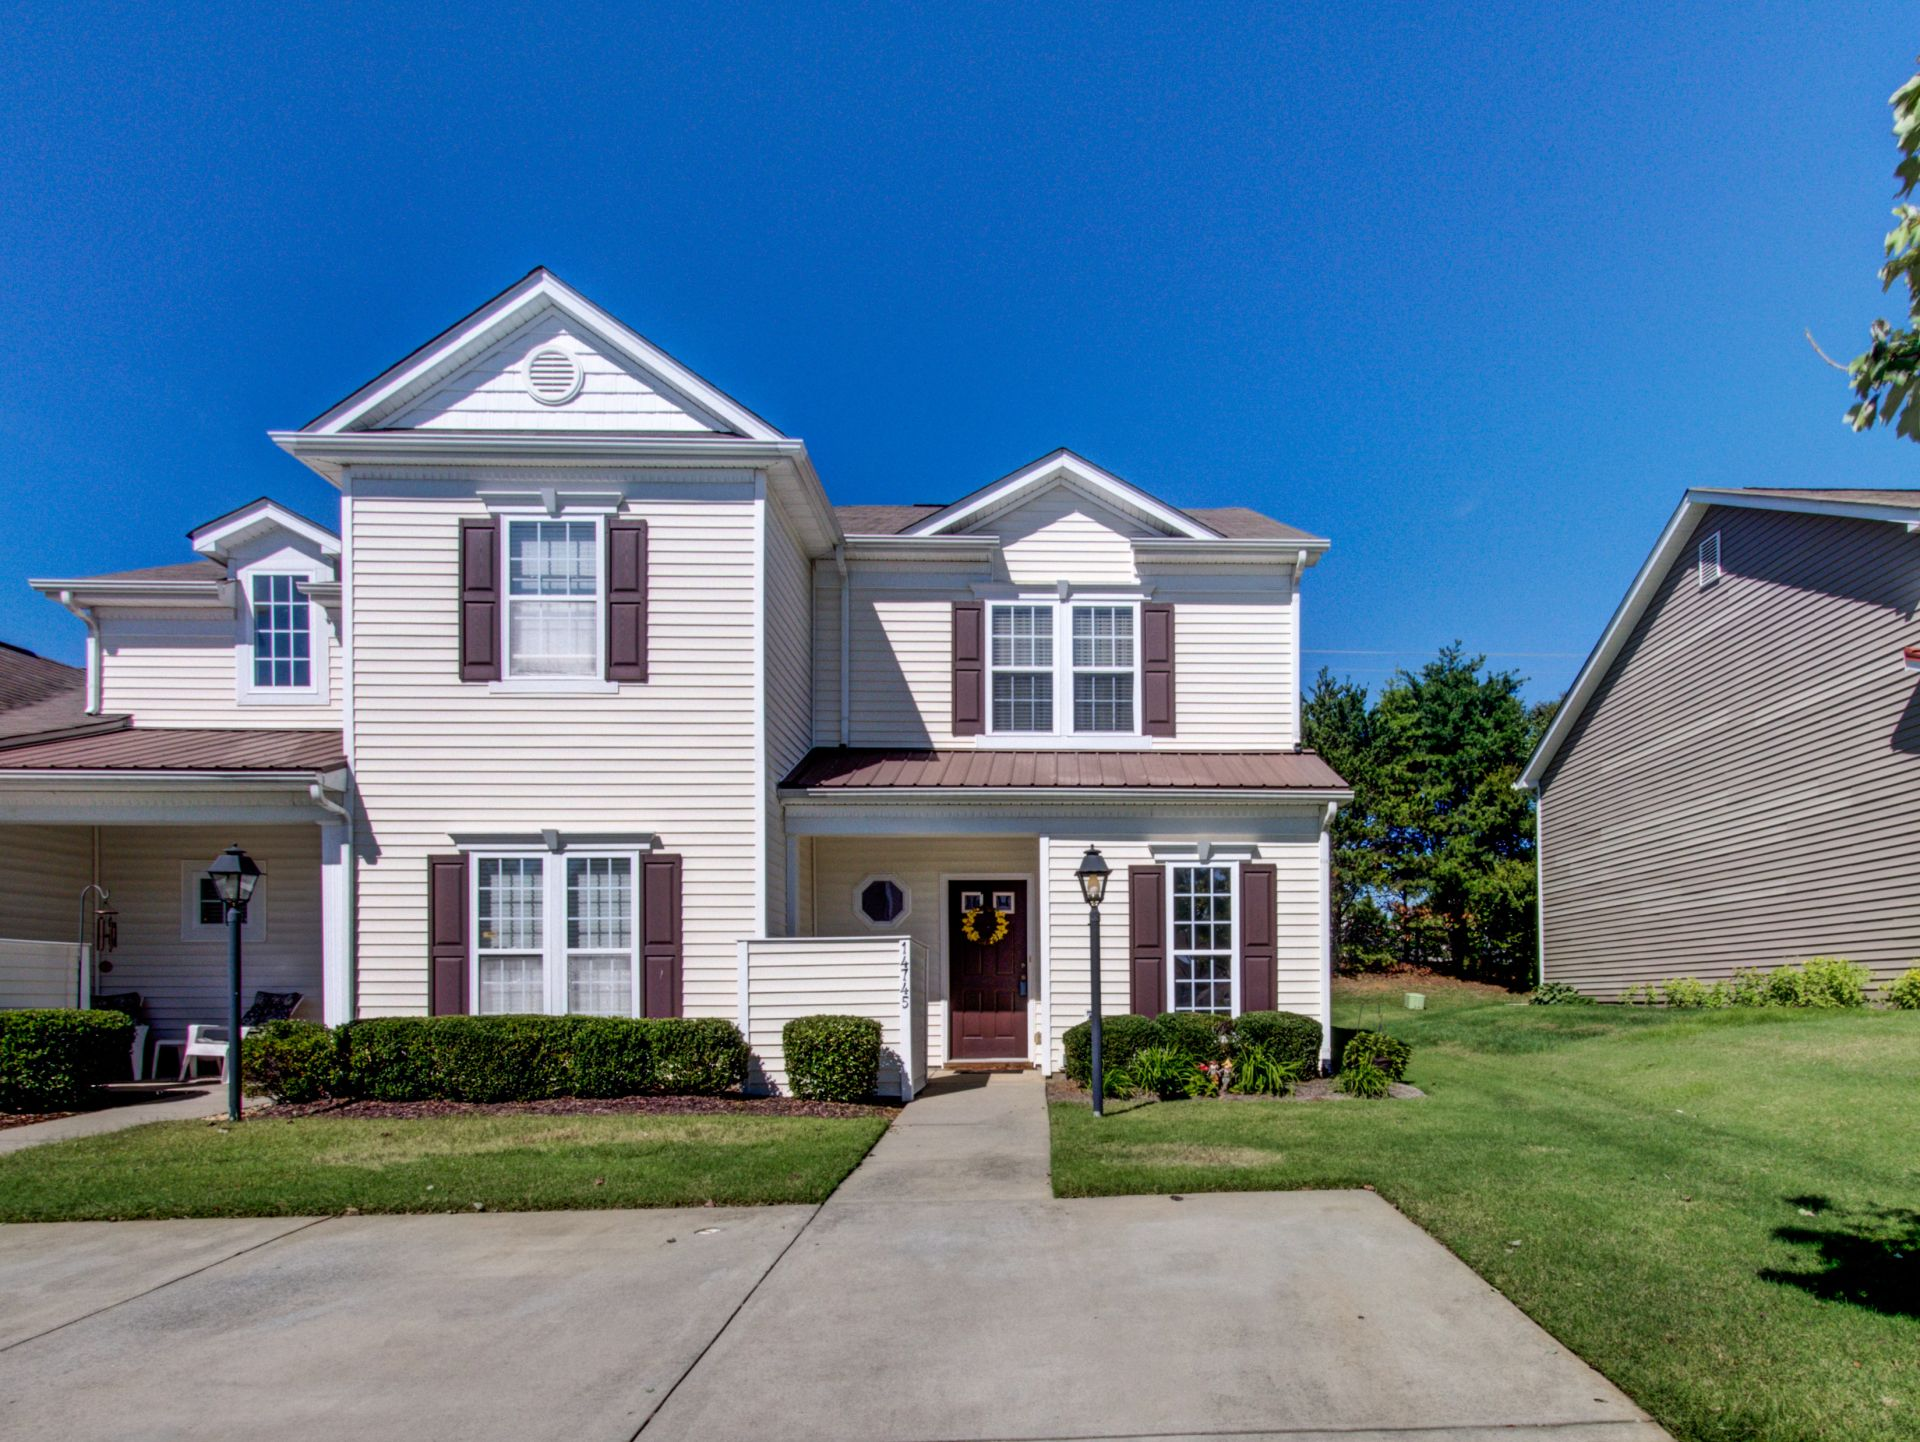 OPEN HOUSE SATURDAY NOVEMBER 5TH 1 TO 3 PM 14745 LIONS PRIDE COURT